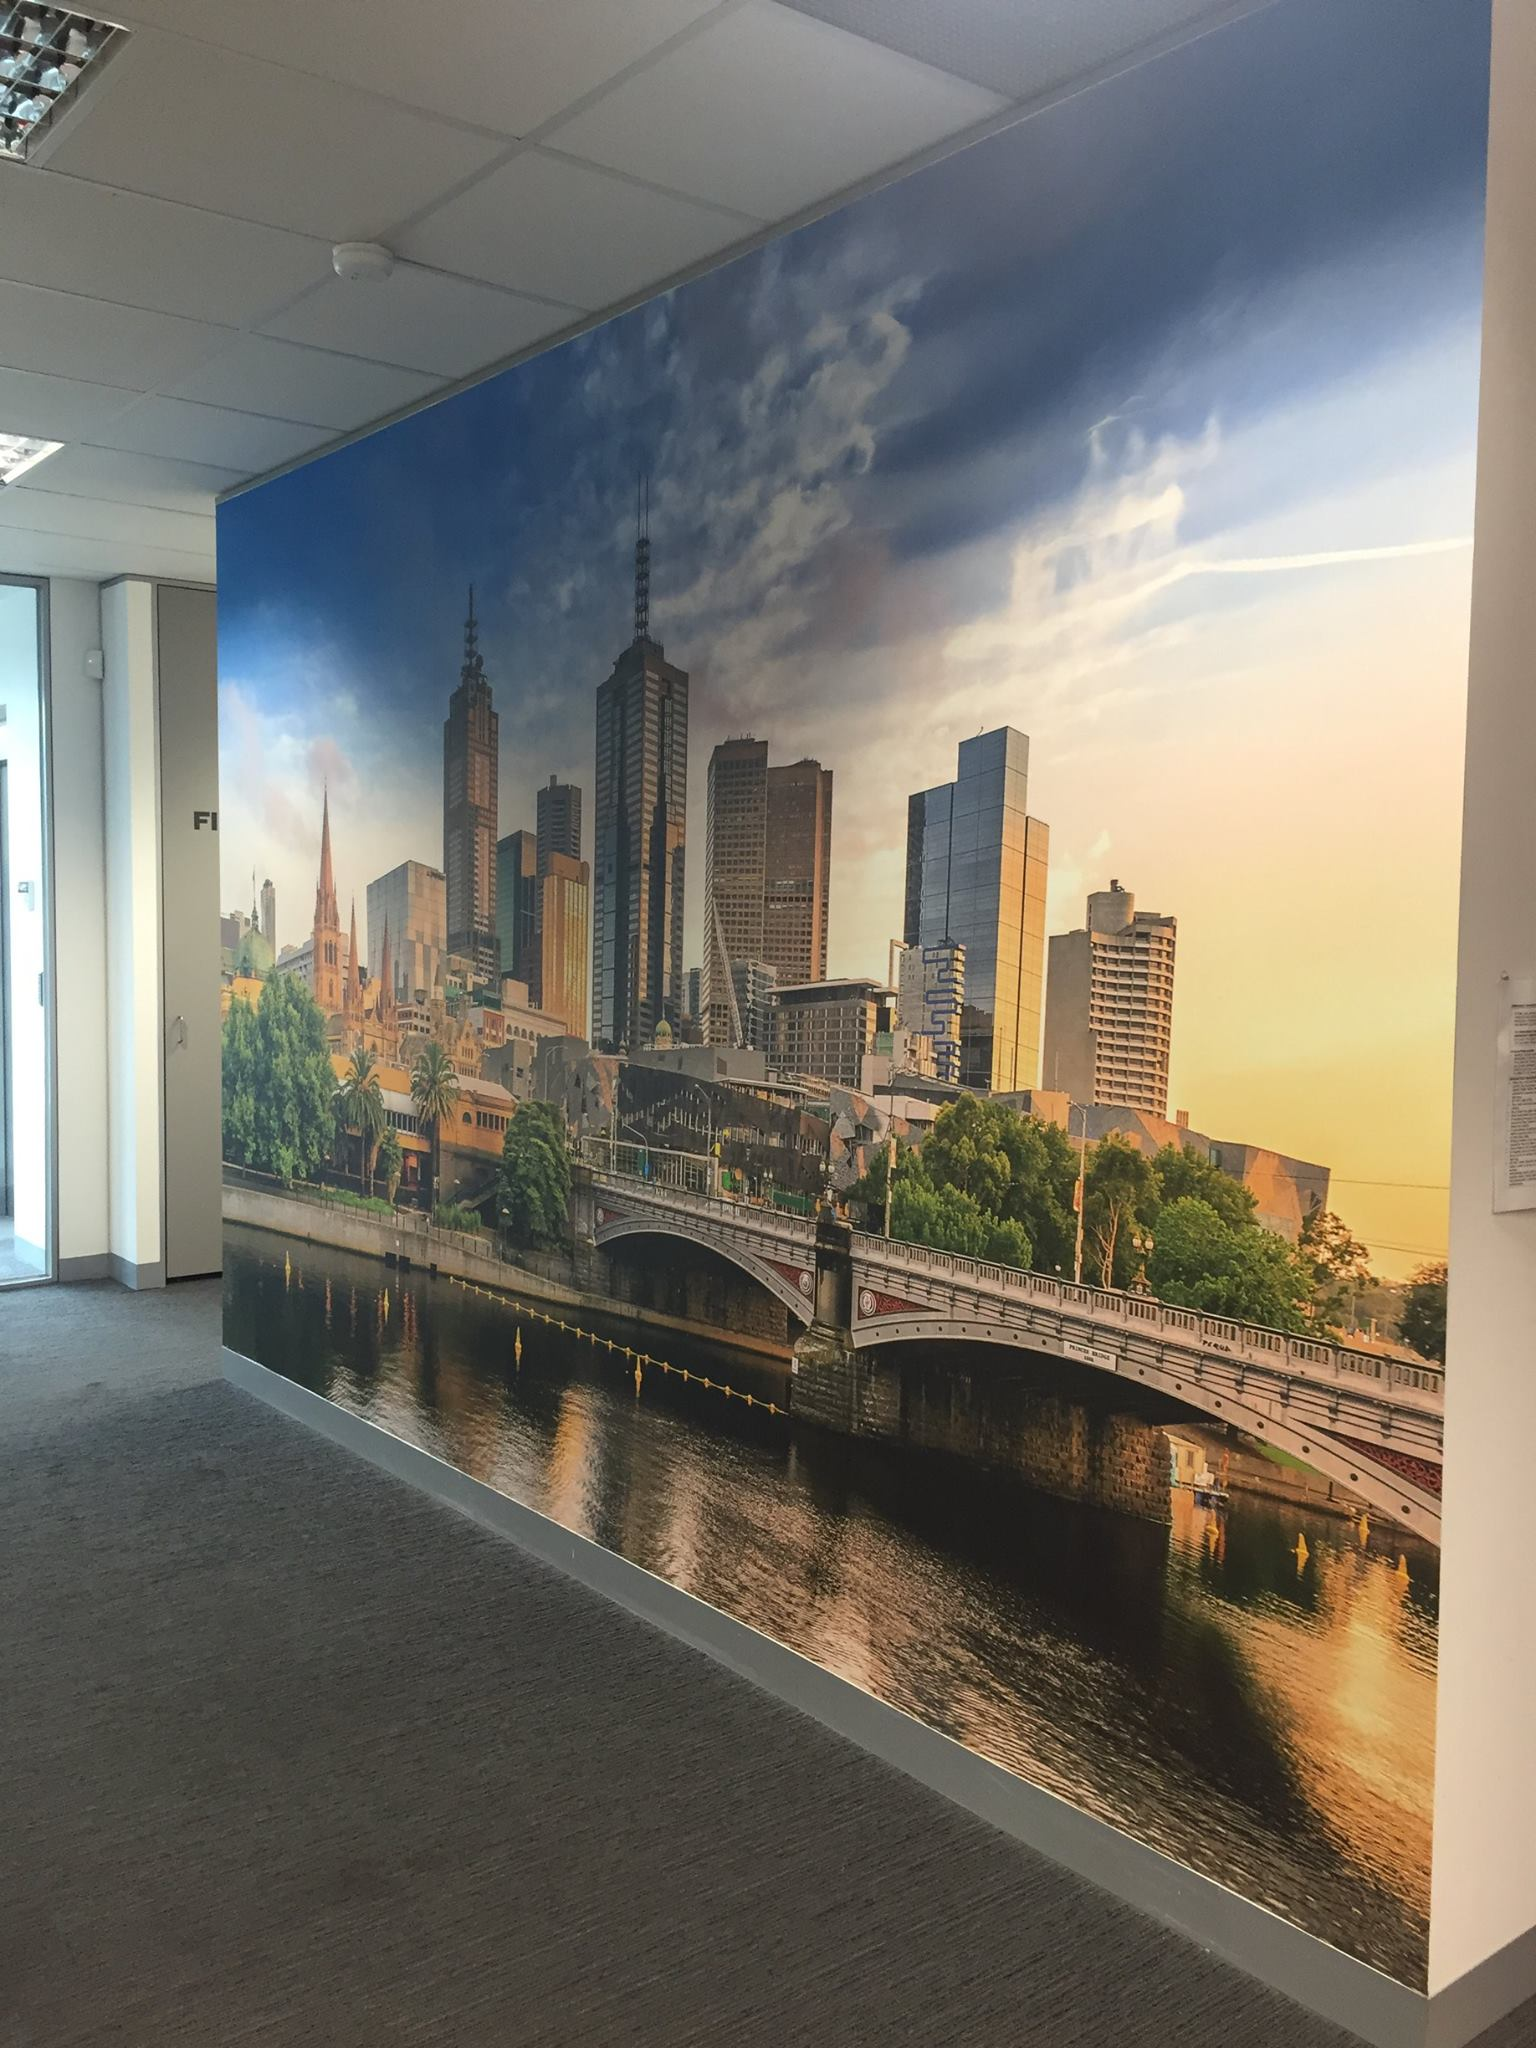 melbourne skyline wallpaper on an office wall